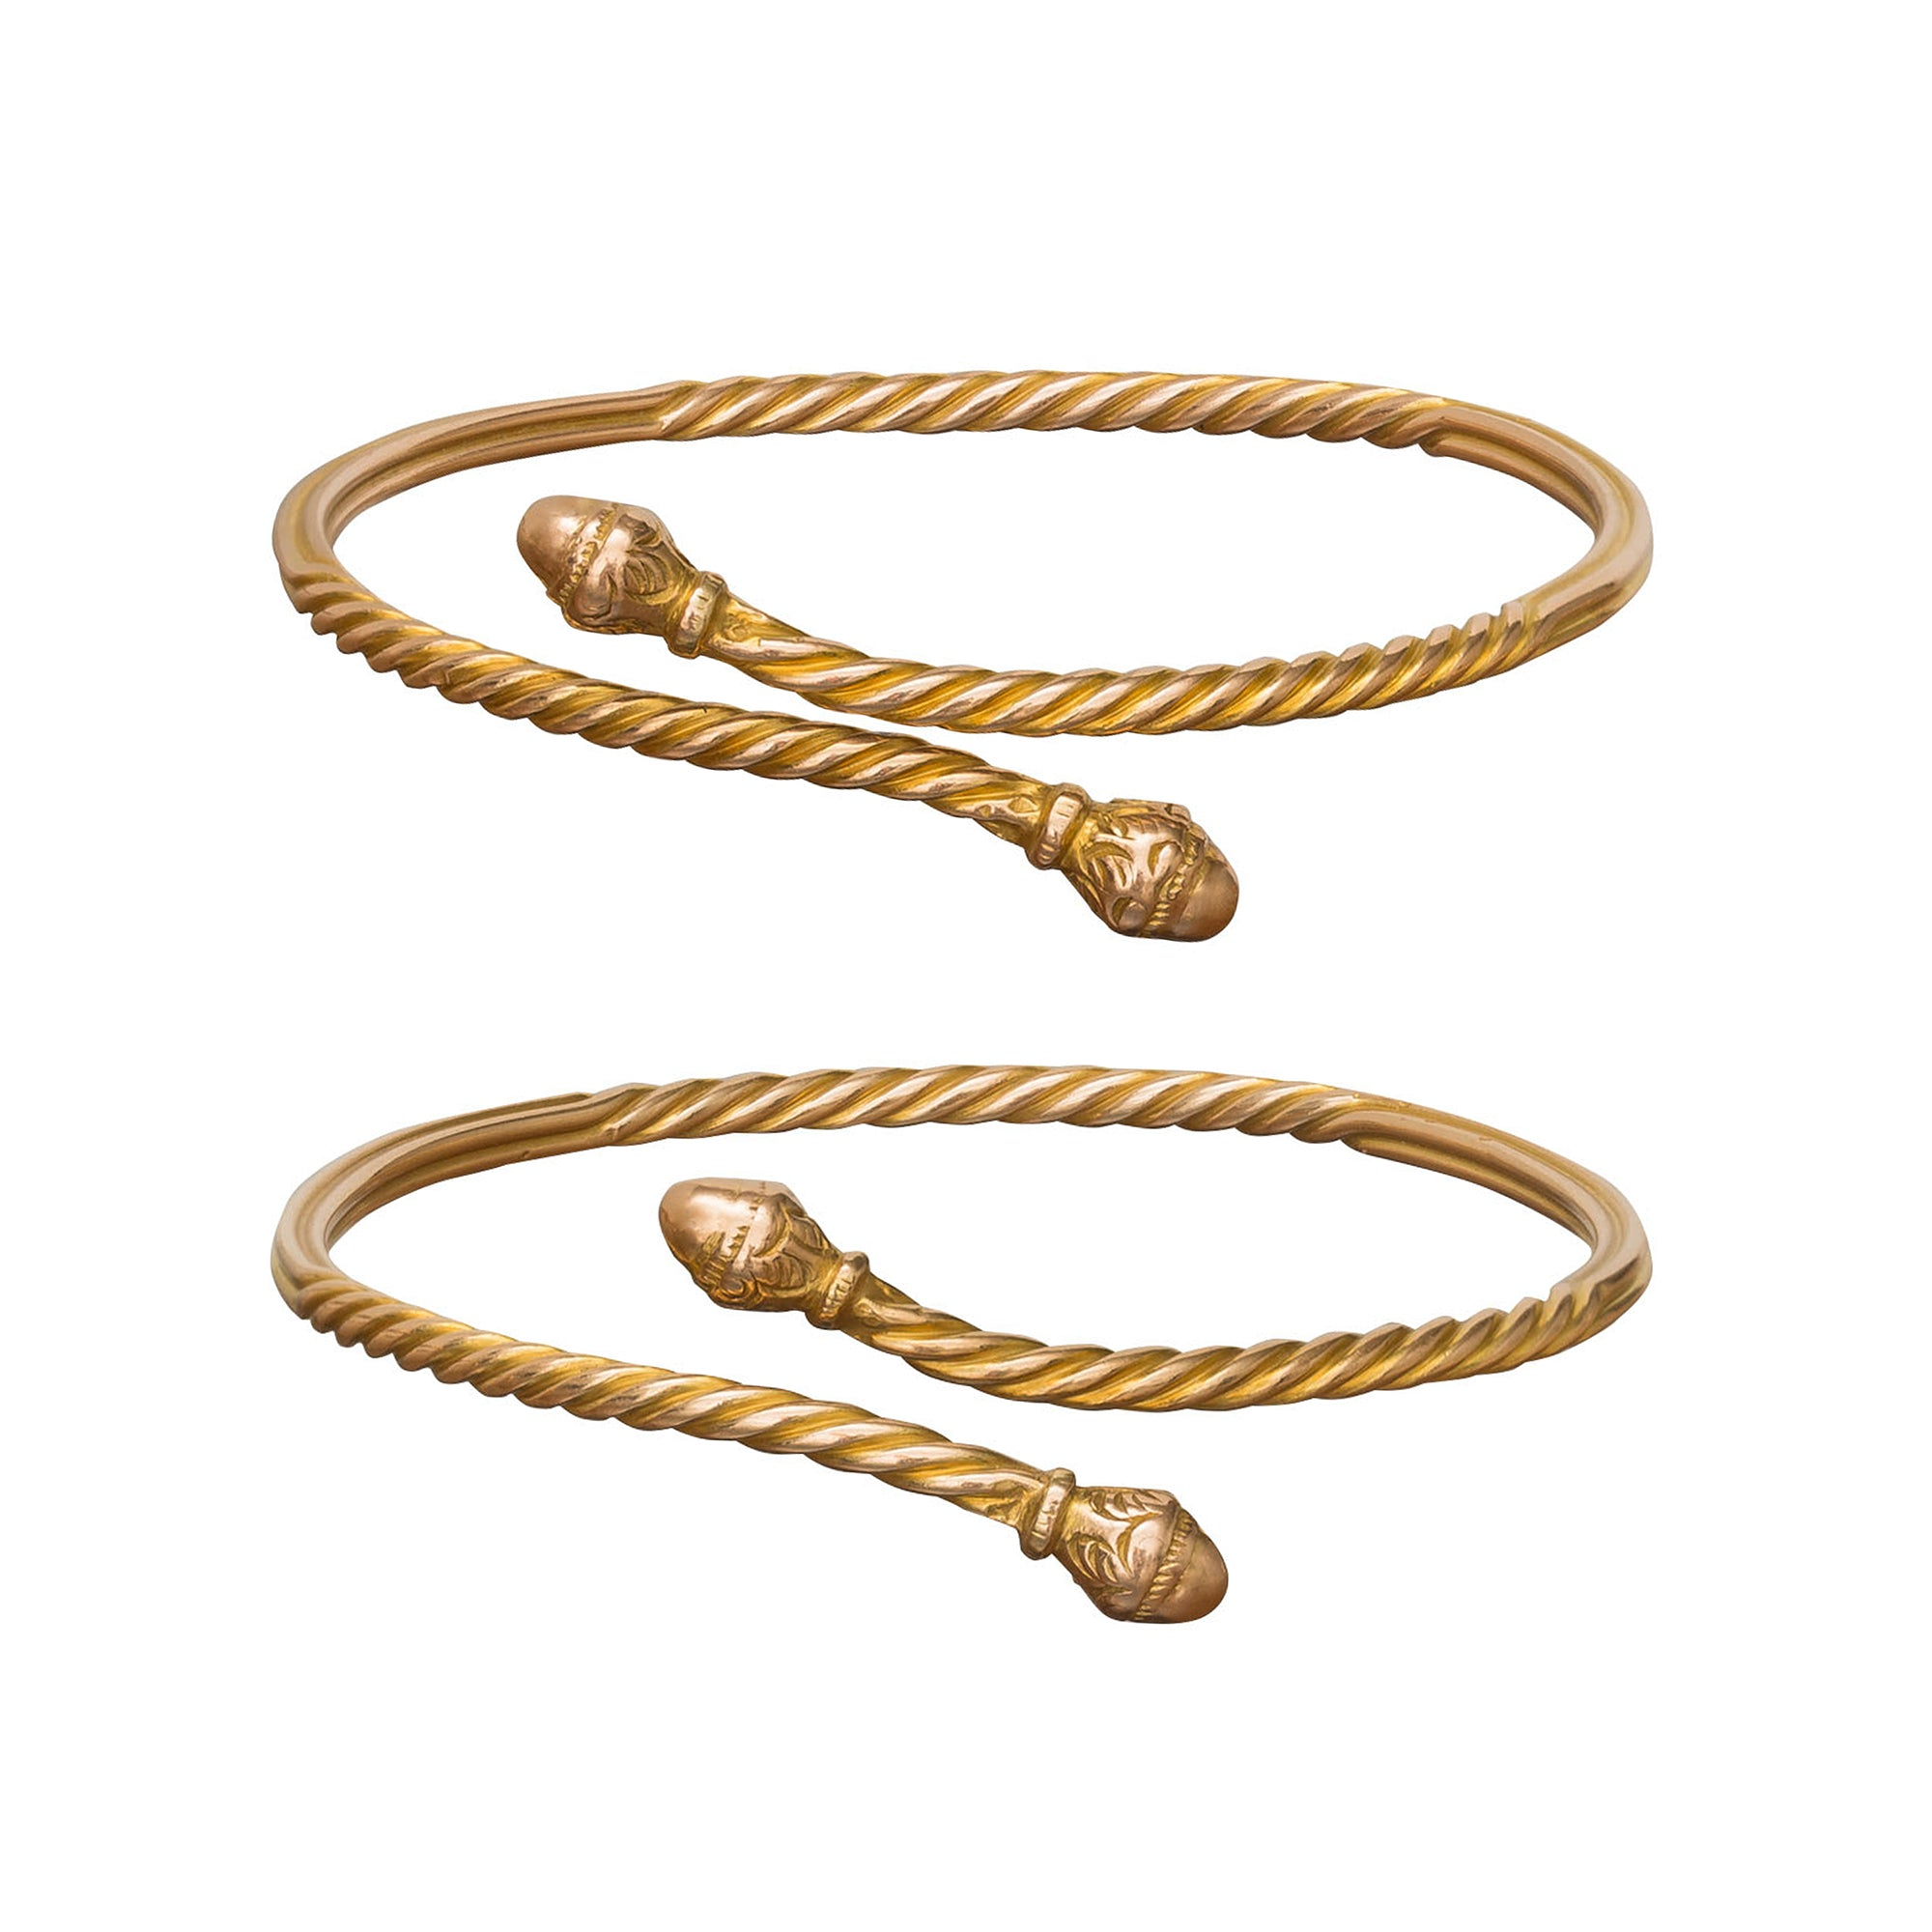 Twisted Bangles - Vintage Jewelry - Bracelets | Broken English Jewelry